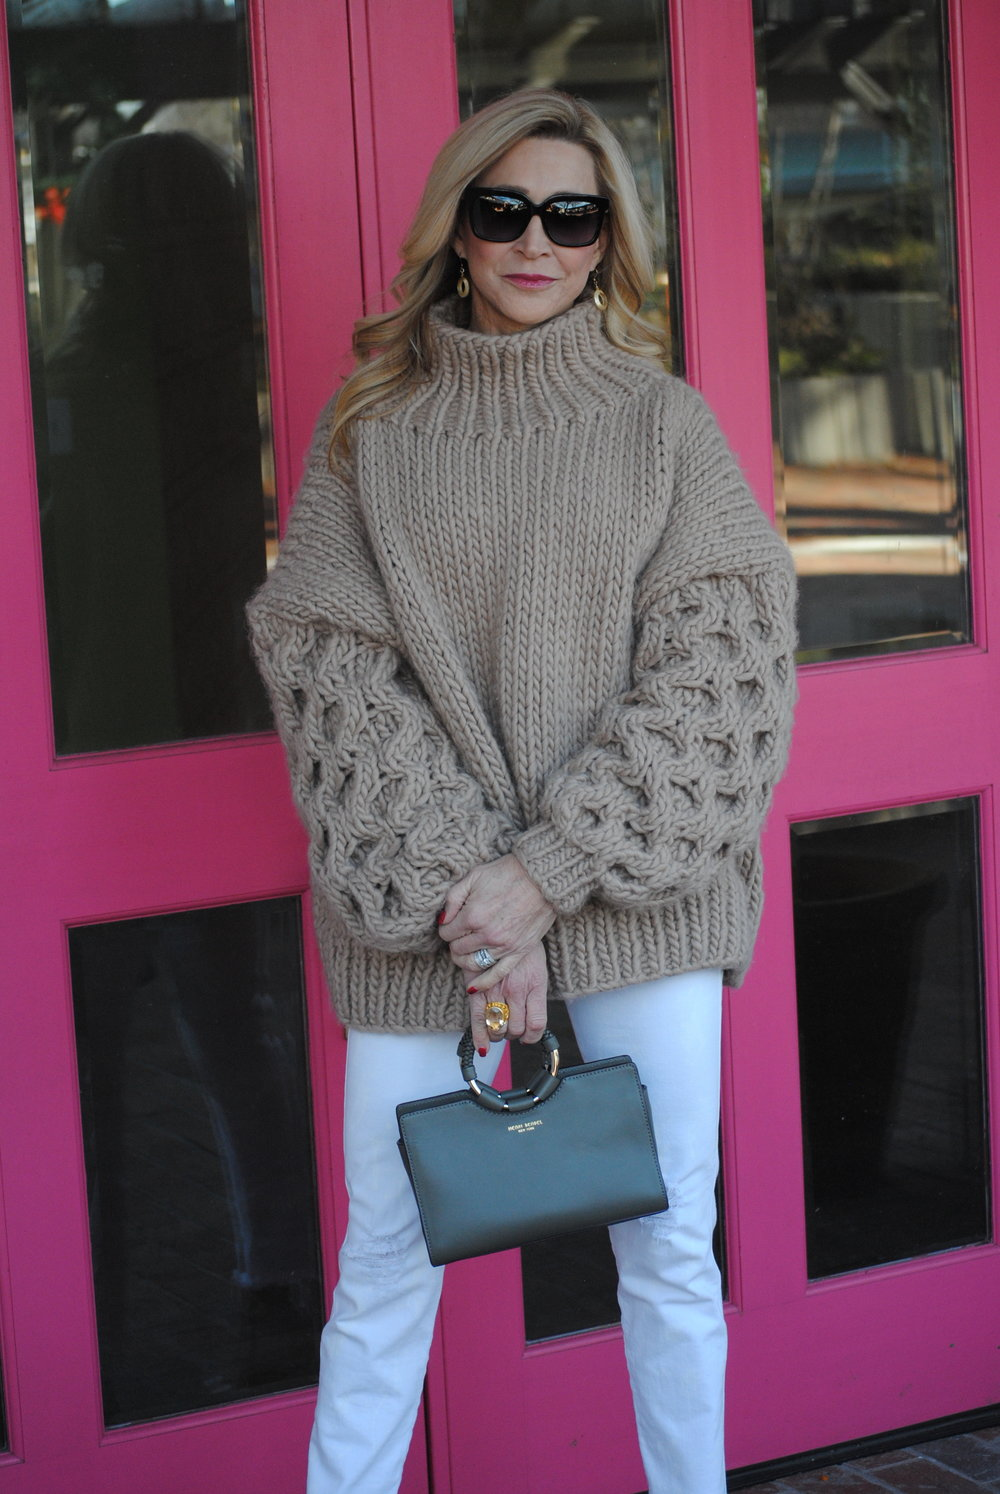 Hot to style an oversize turtleneck